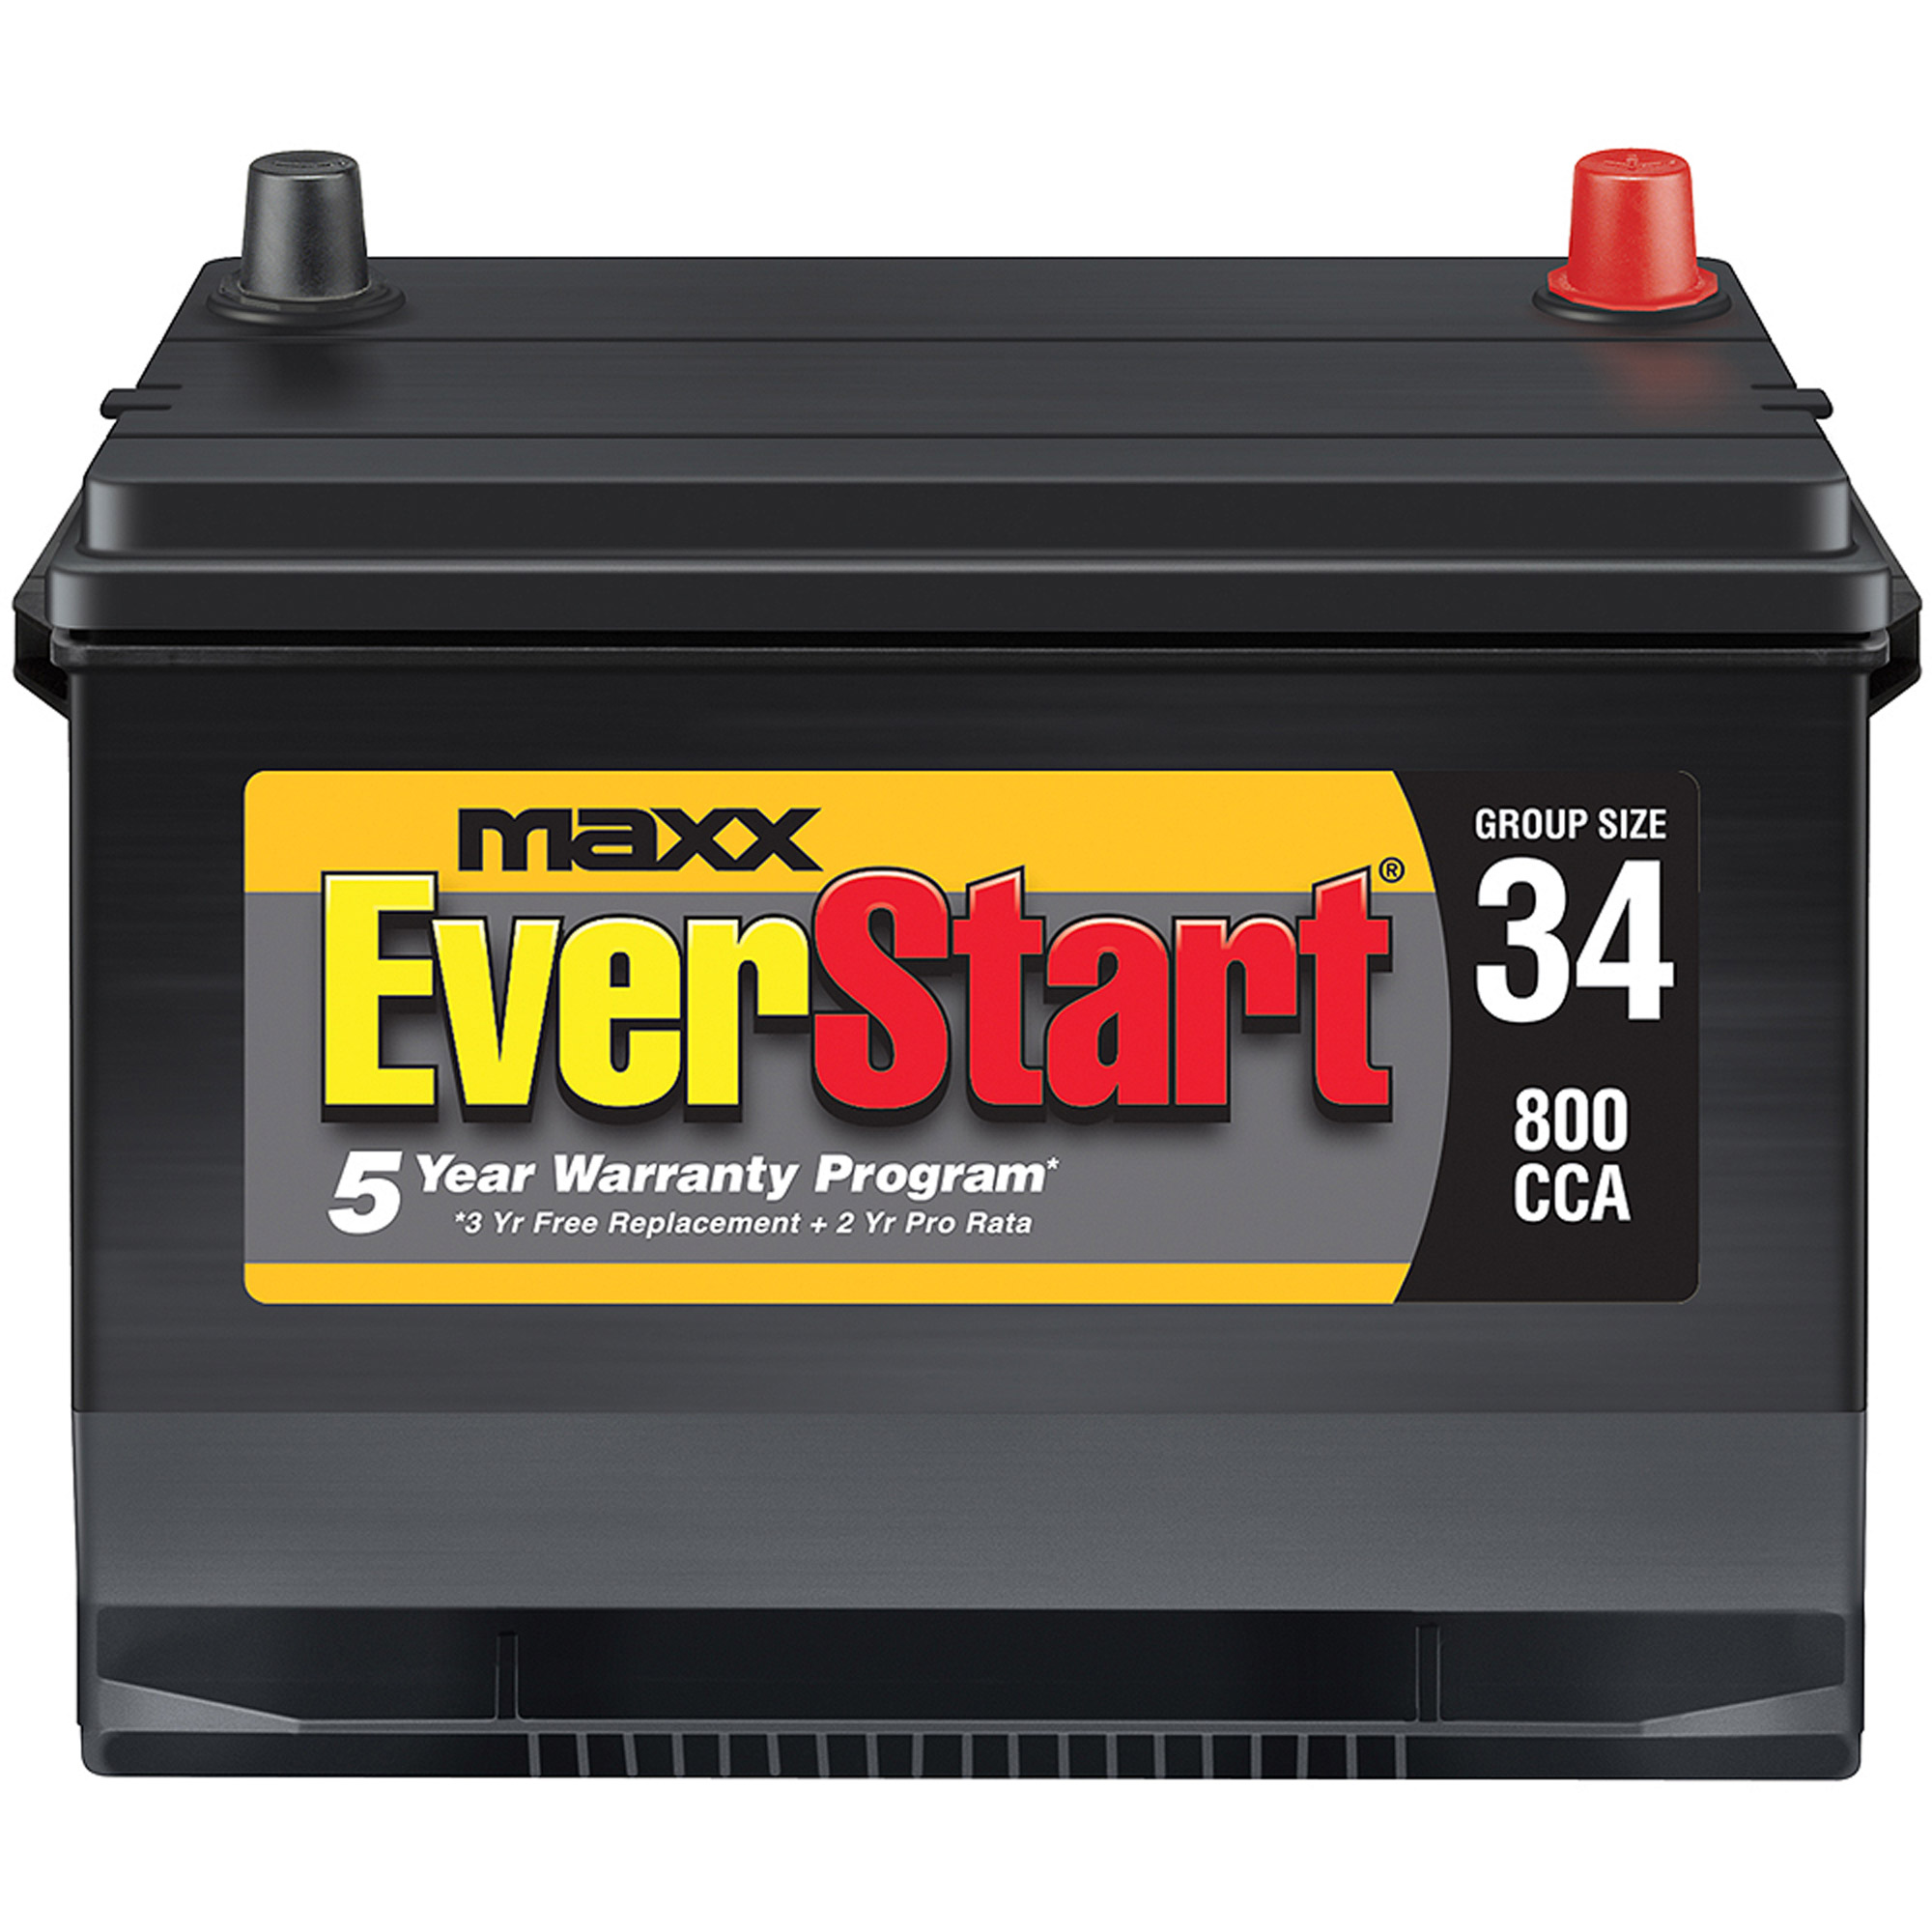 Everstart Maxx Lead Acid Automotive Battery Group 34n